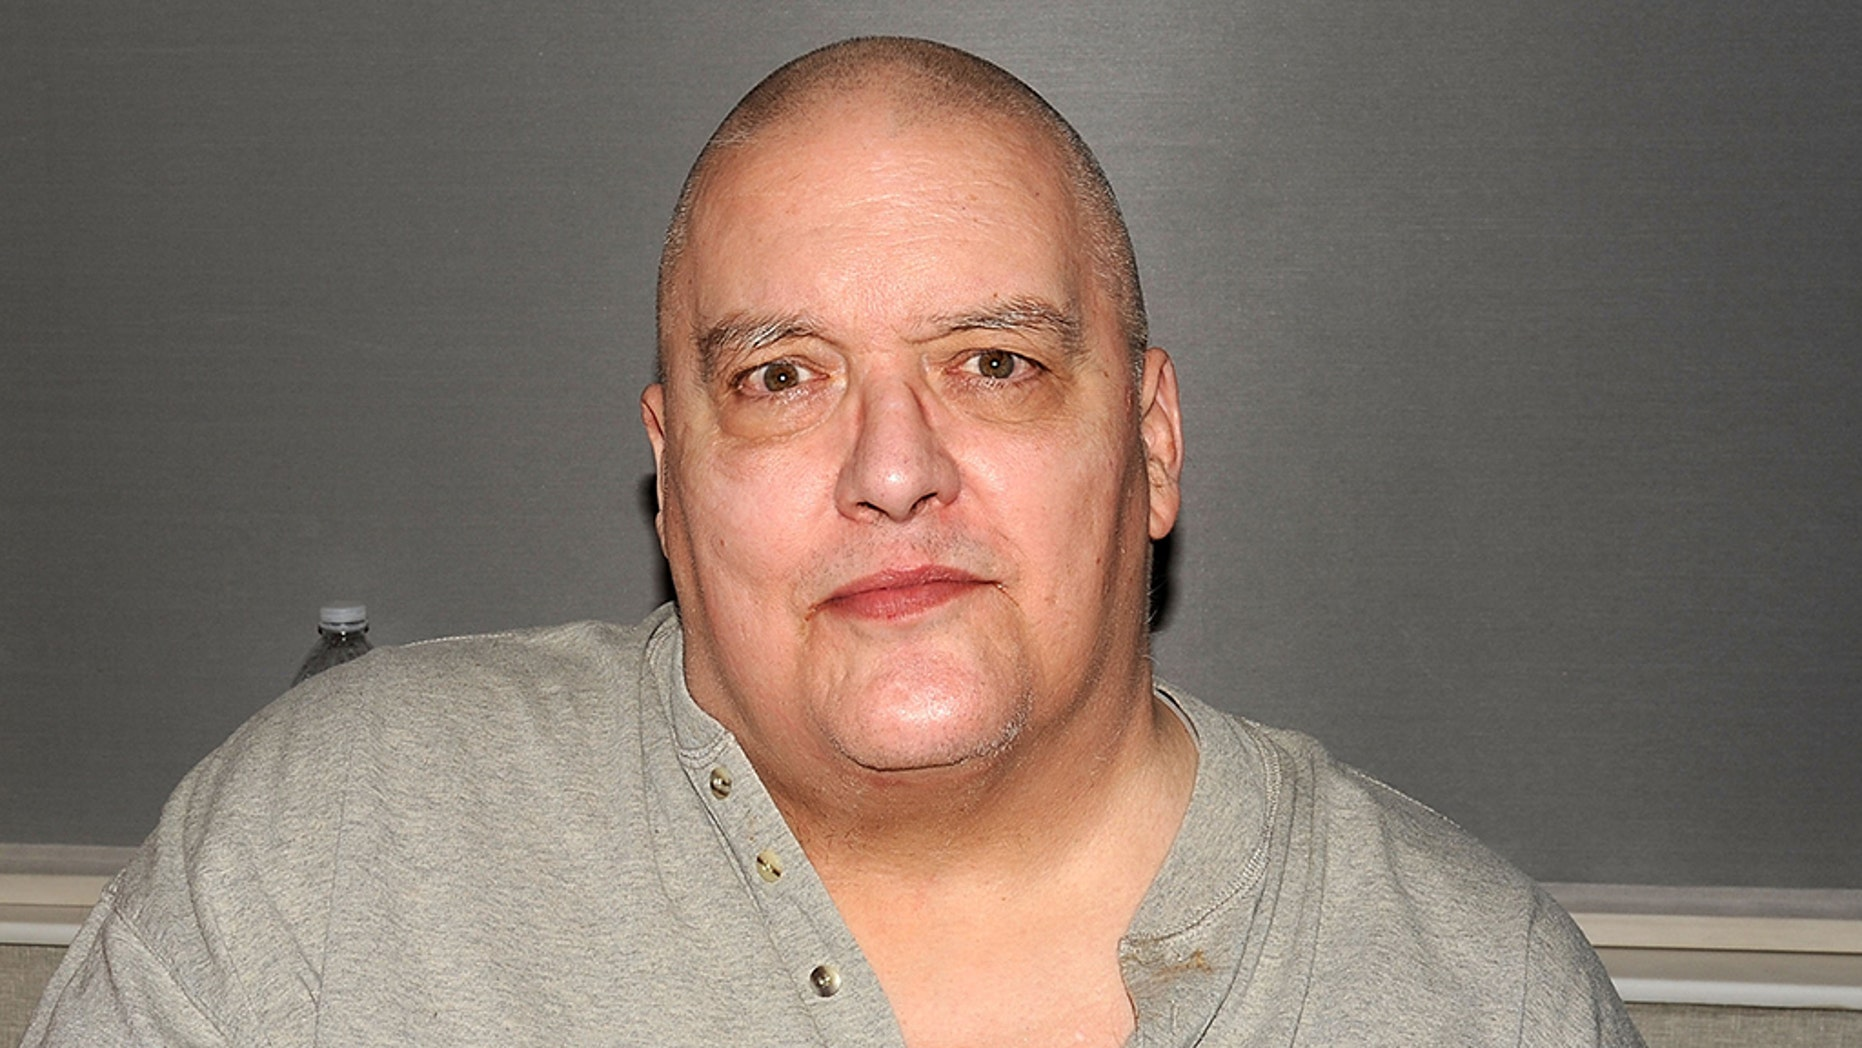 PARSIPPANY, NJ - OCTOBER 28: King Kong Bundy (Christopher Alan Pallies) attends Chiller Theater Expo Winter 2017 at Parsippany Hilton on October 28, 2017 in Parsippany, New Jersey. (Photo by Bobby Bank/Getty Images)